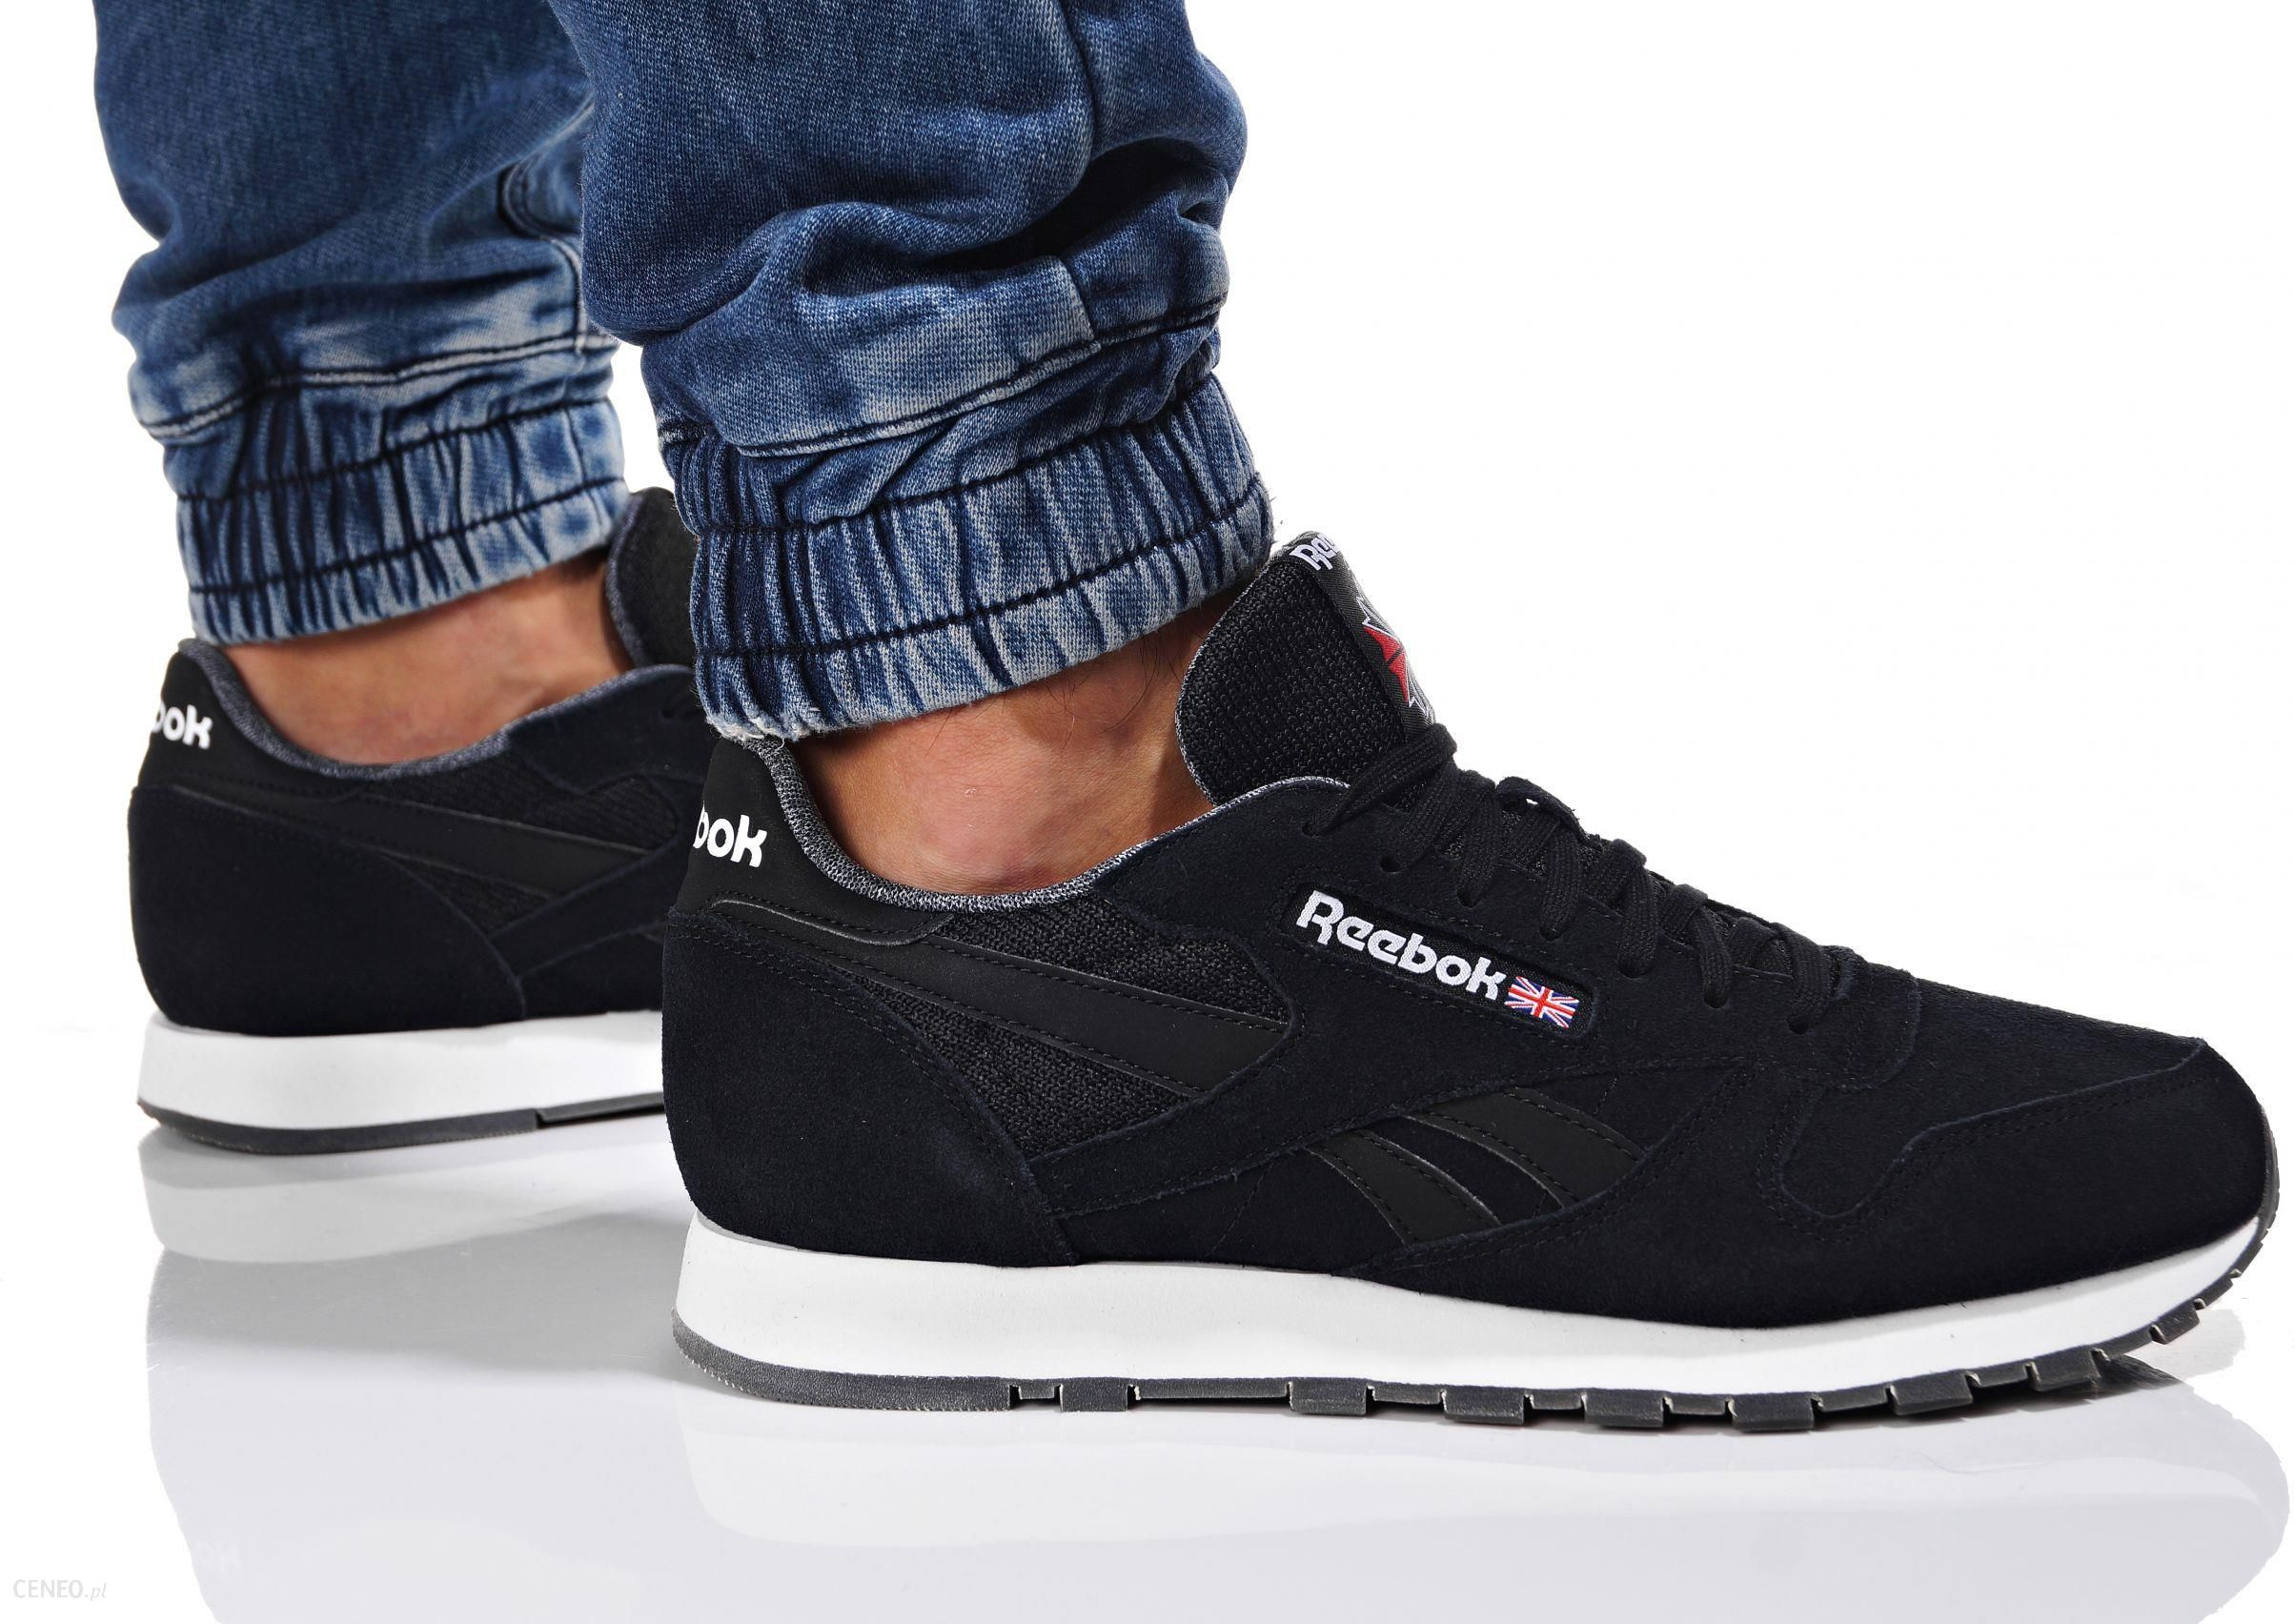 091d7e80b3152 BUTY REEBOK CLASSIC LEATHER NM BS6298 - Ceny i opinie - Ceneo.pl